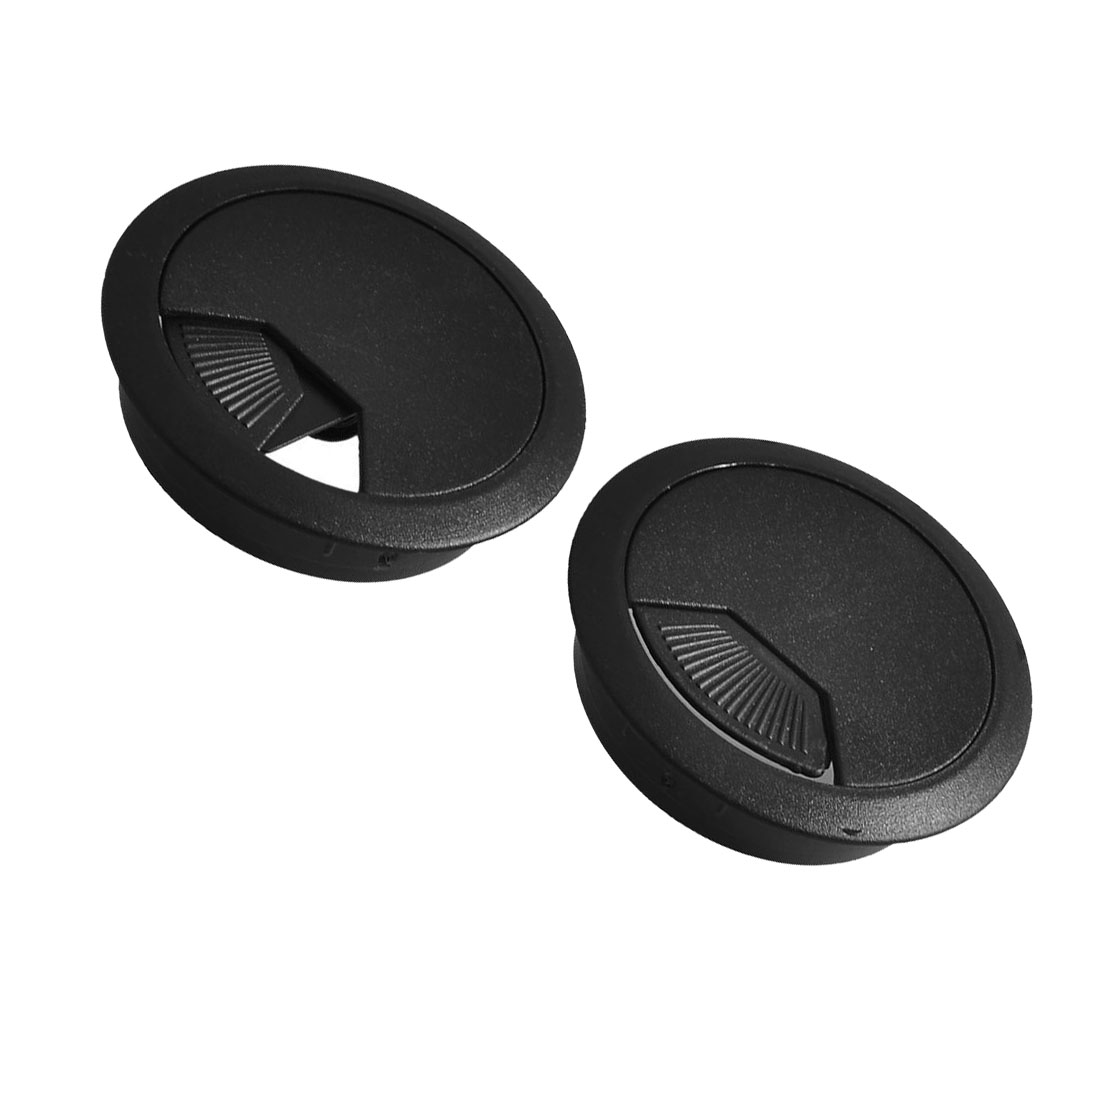 Furniture Accessories Humorous 2 Pcs 53mm Diameter Desk Wire Cord Cable Grommets Hole Cover Black